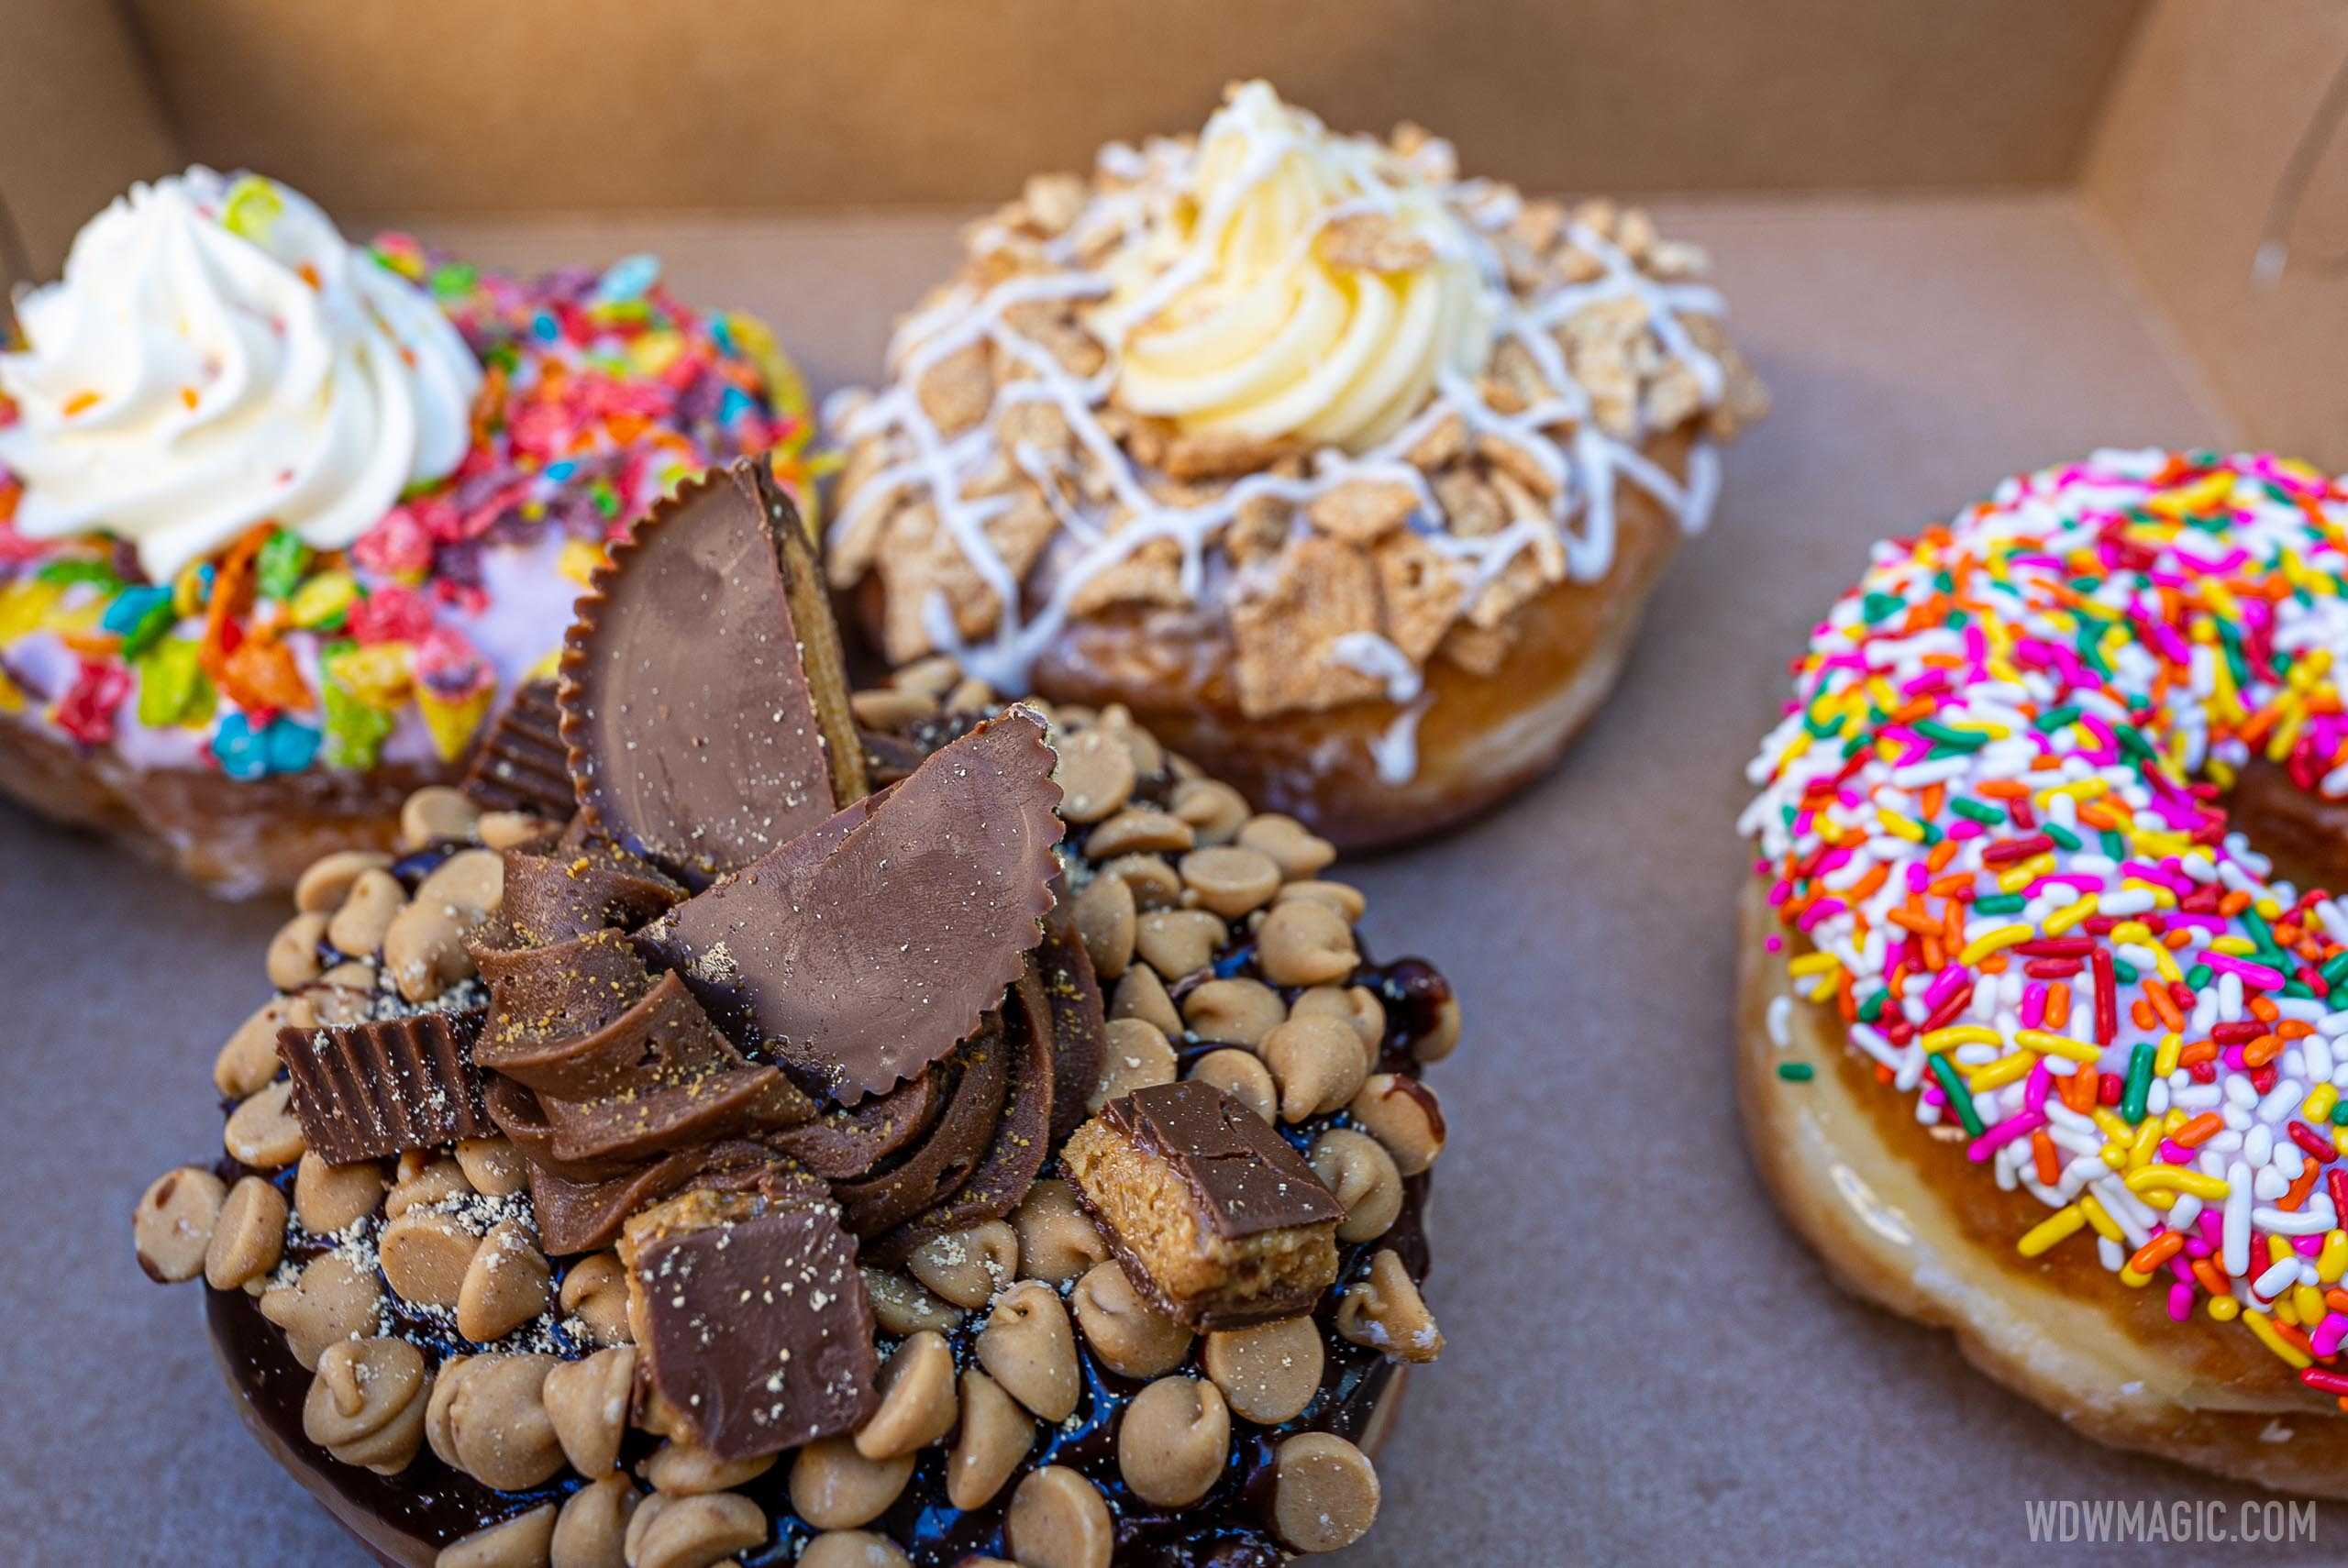 Everglazed-Donuts-and-Cold-Brew_Full_40495.jpg